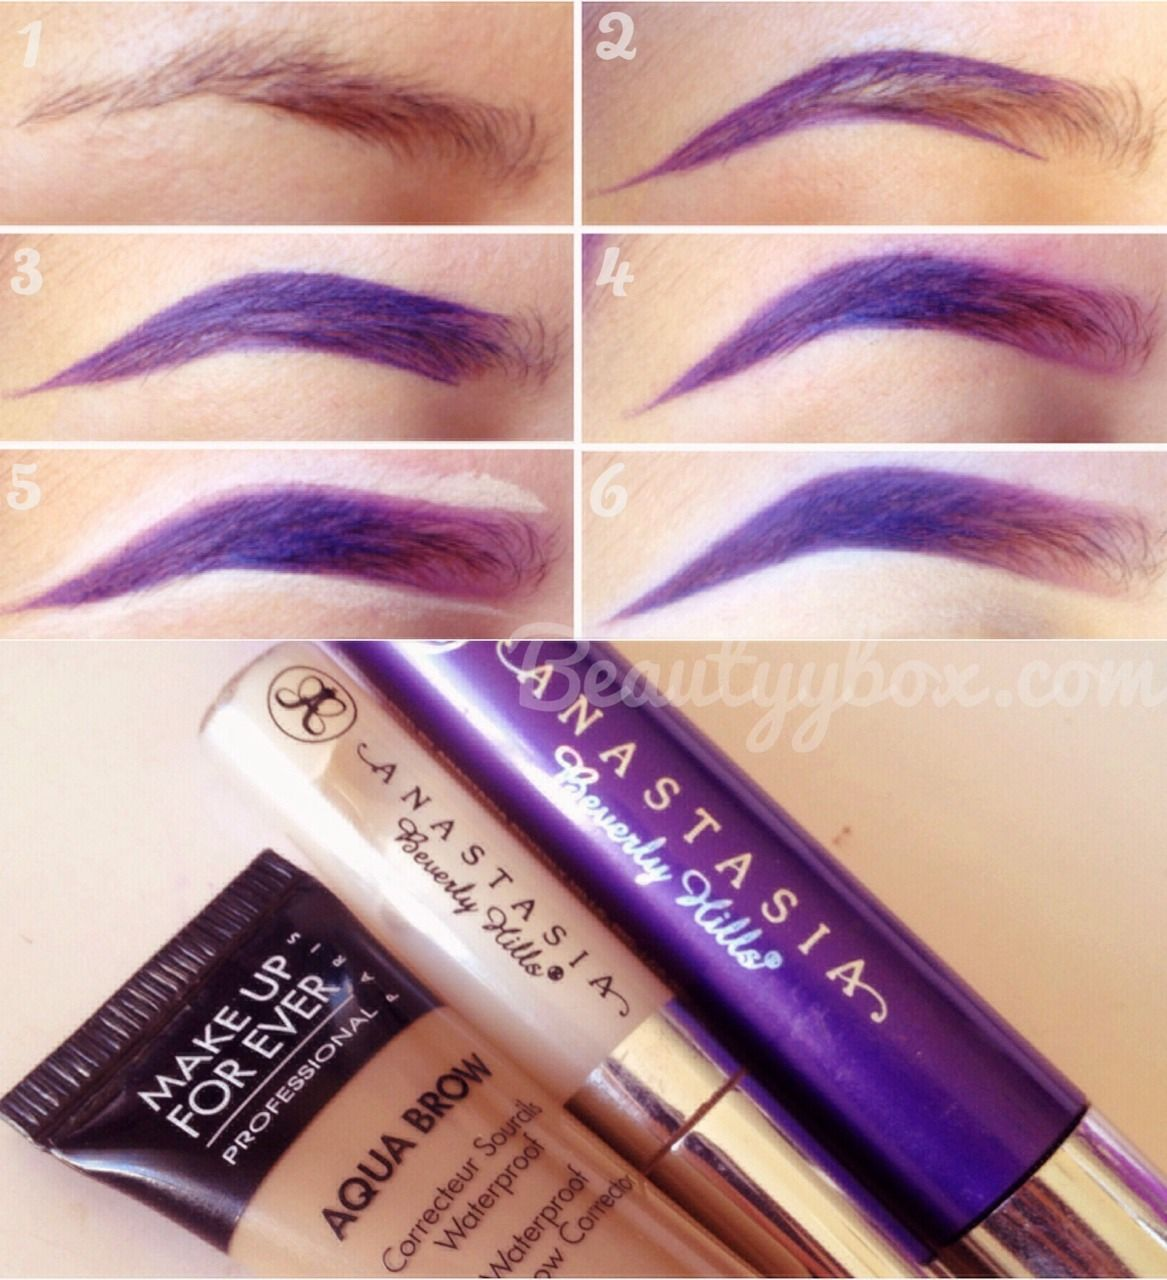 beautyybox 1. Start off with clean brow2. I line the